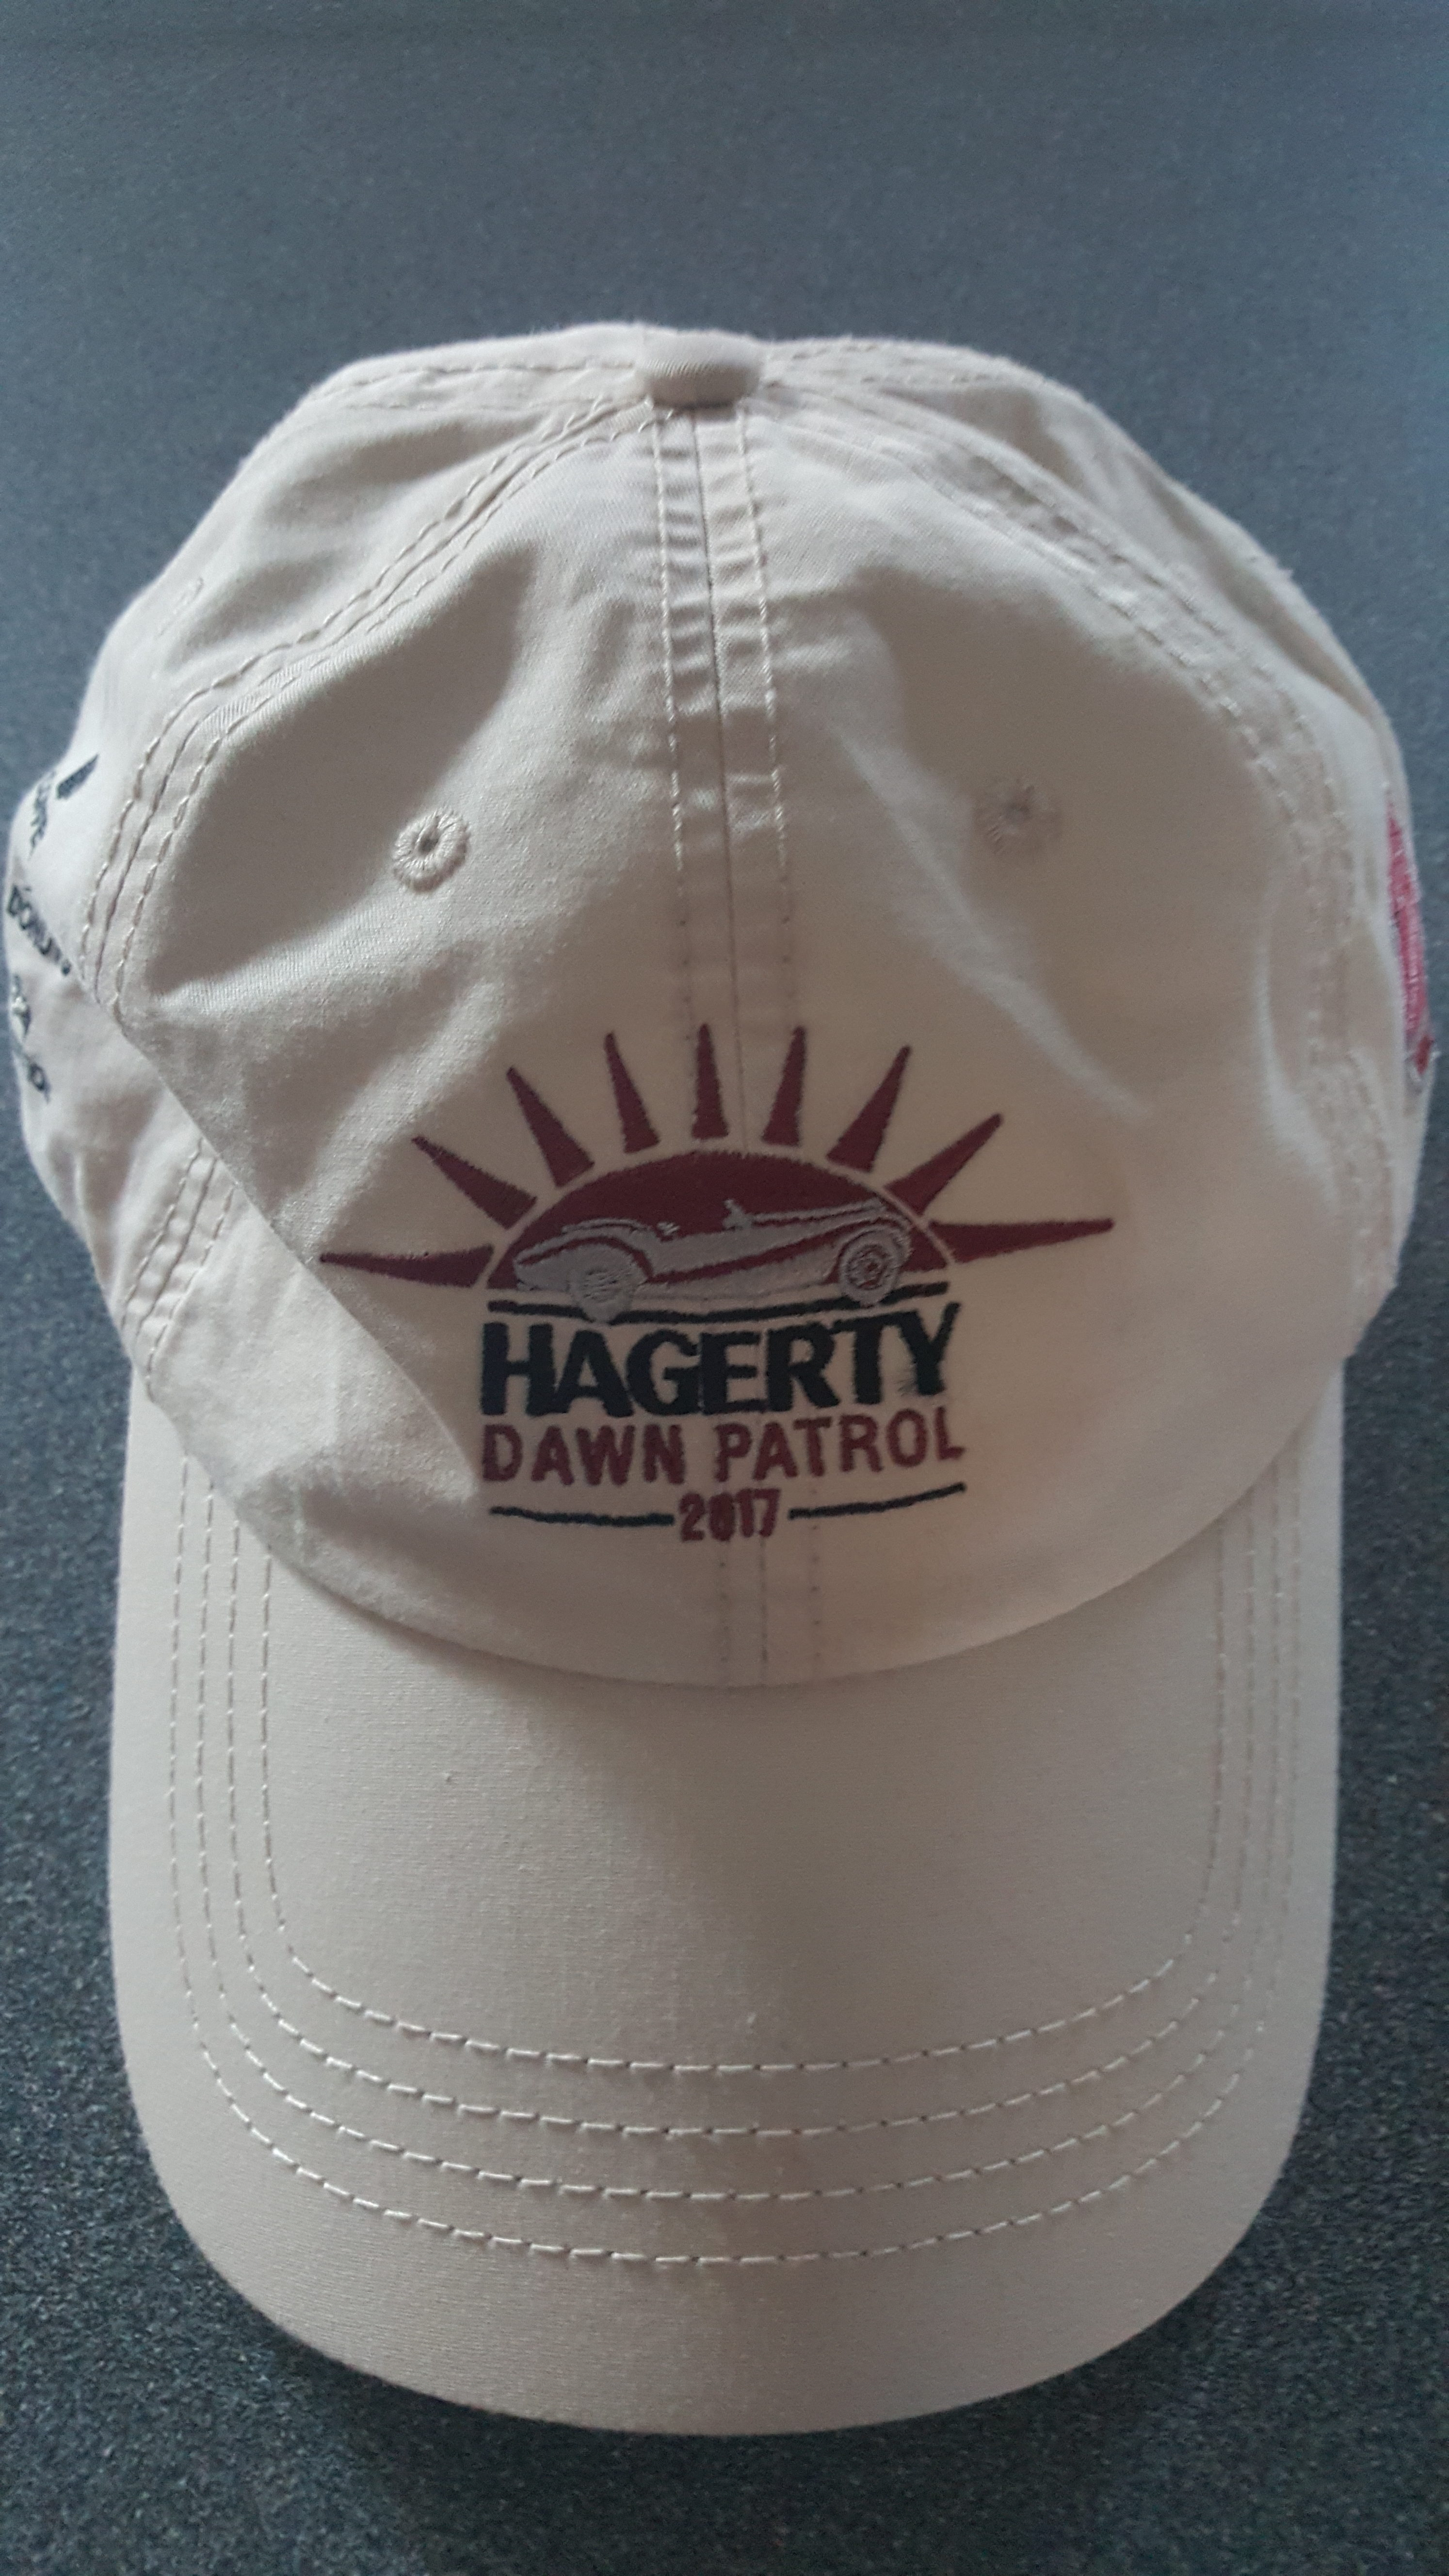 Hagerty Dawn Patrol hat - Pebble Beach Concours d'Elegance 2017